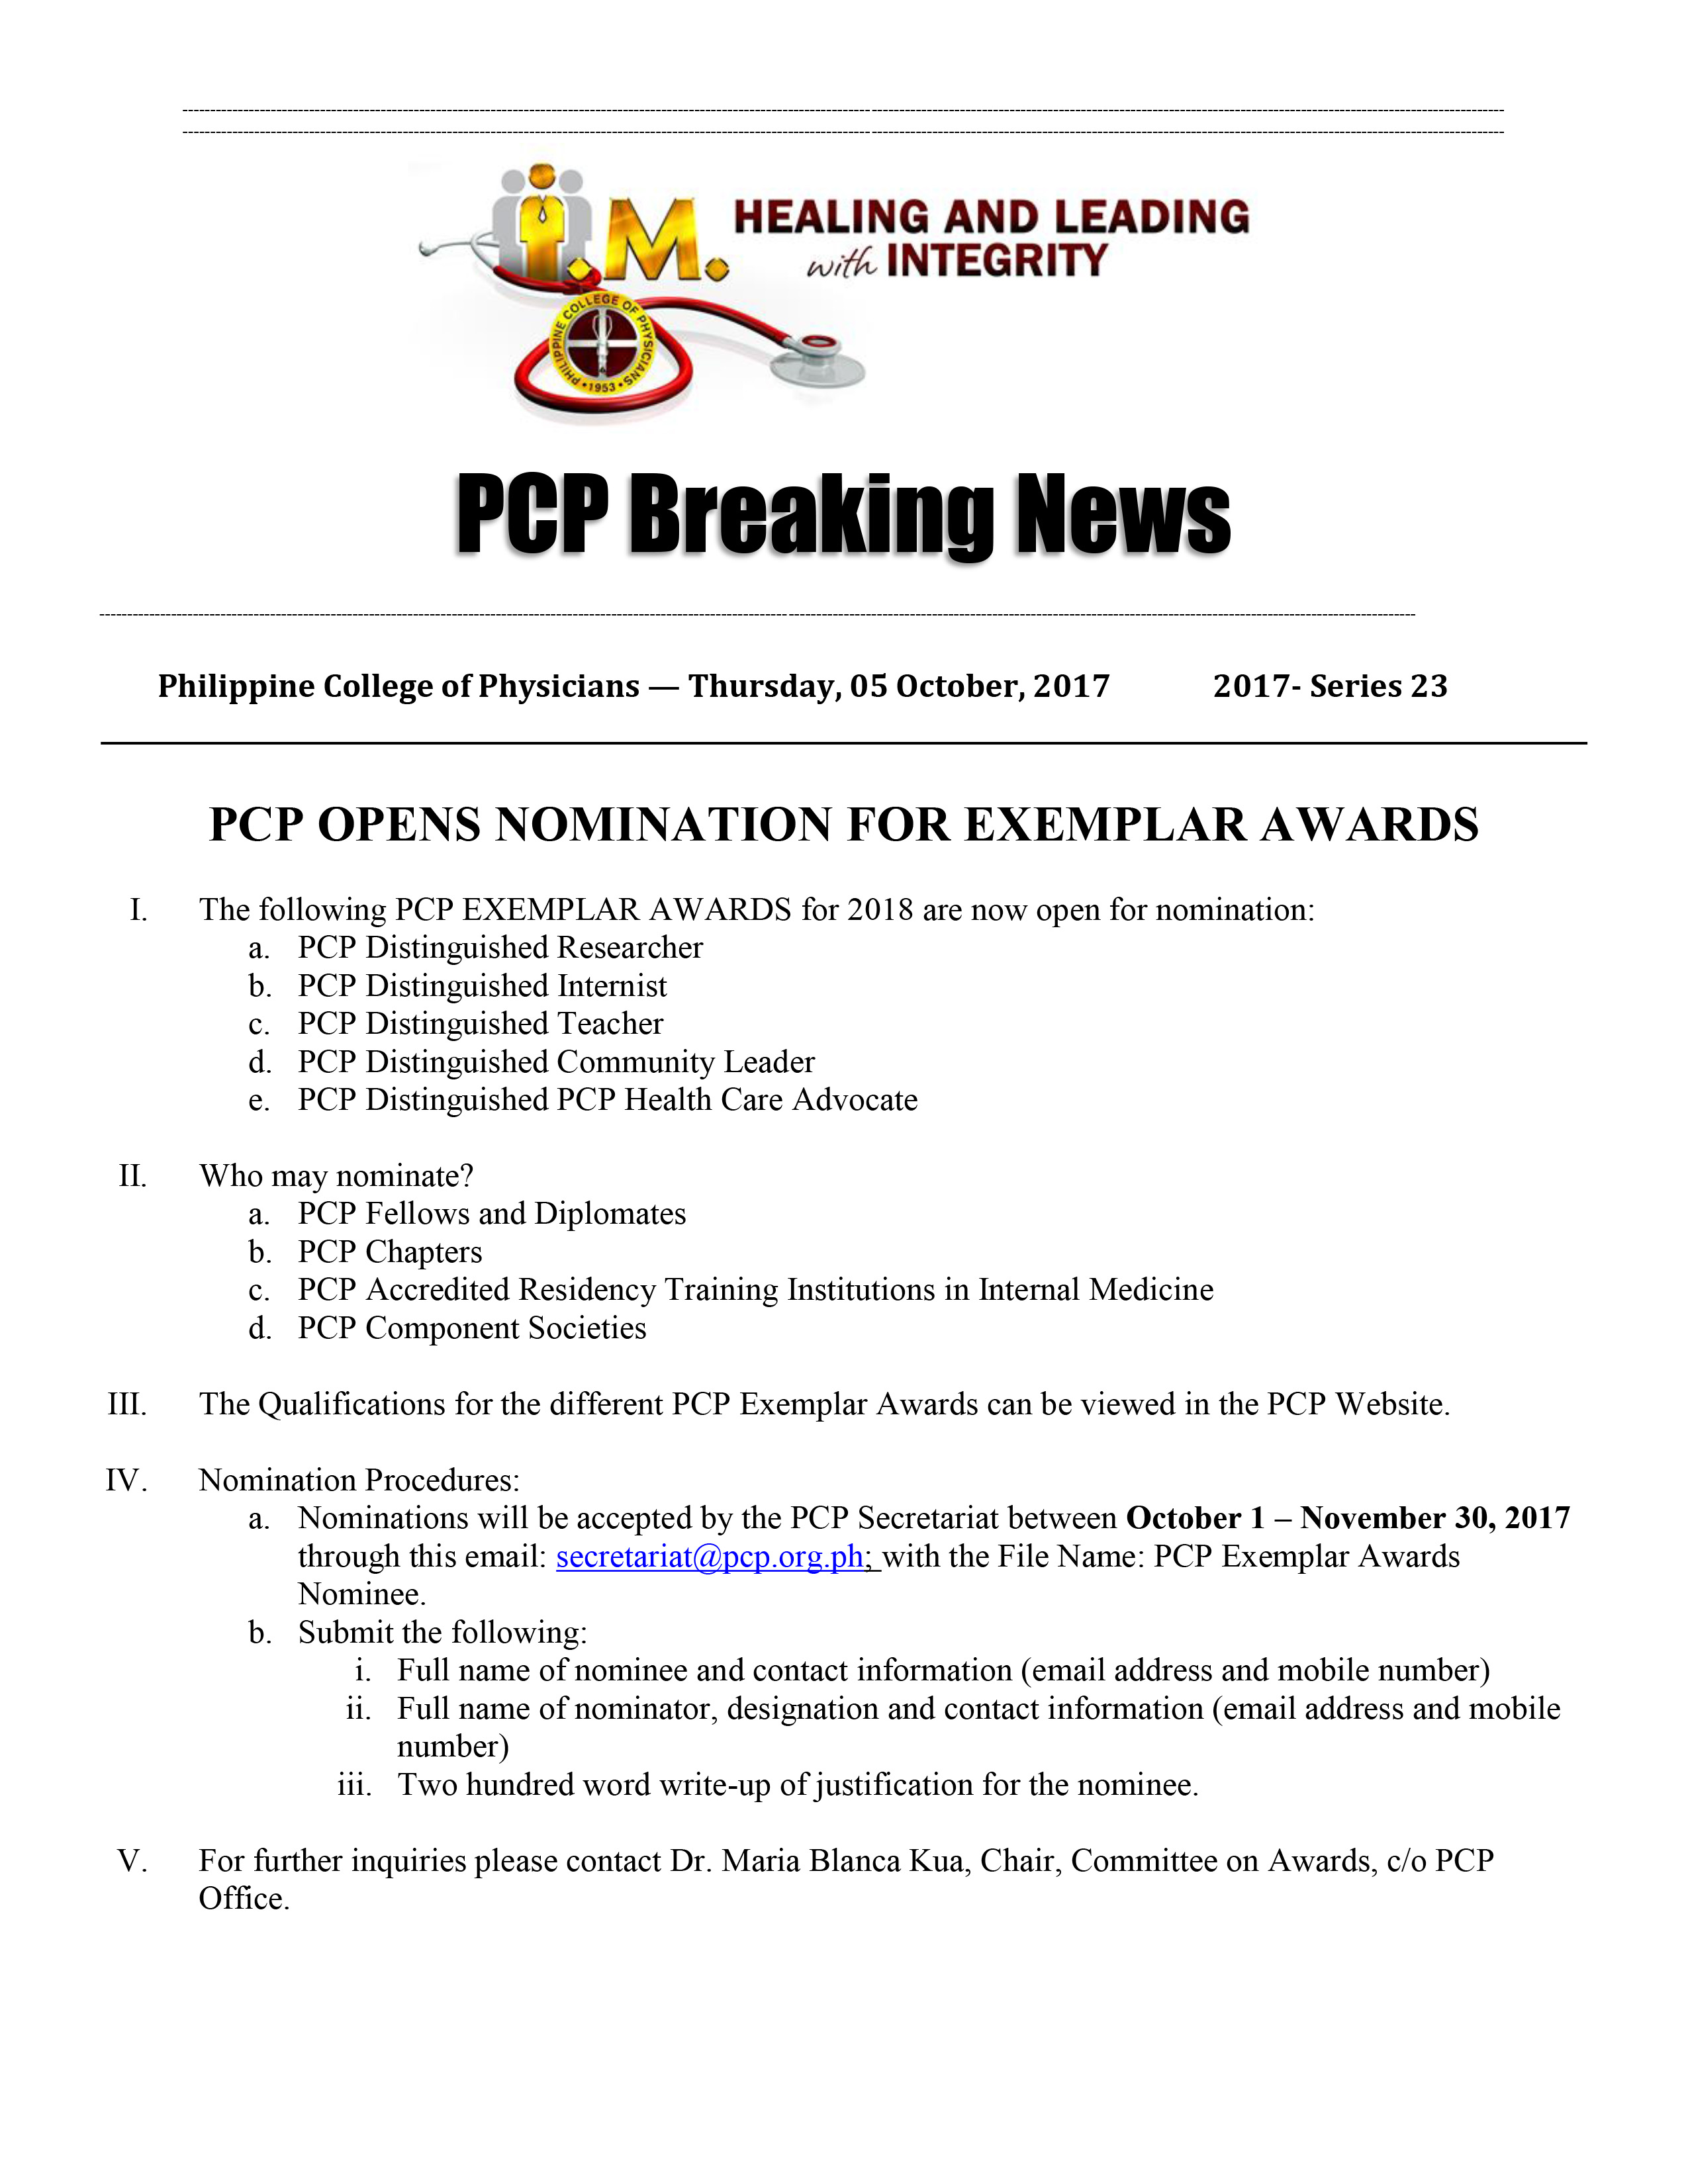 23rd PCP Breaking News CommAwards 10042017